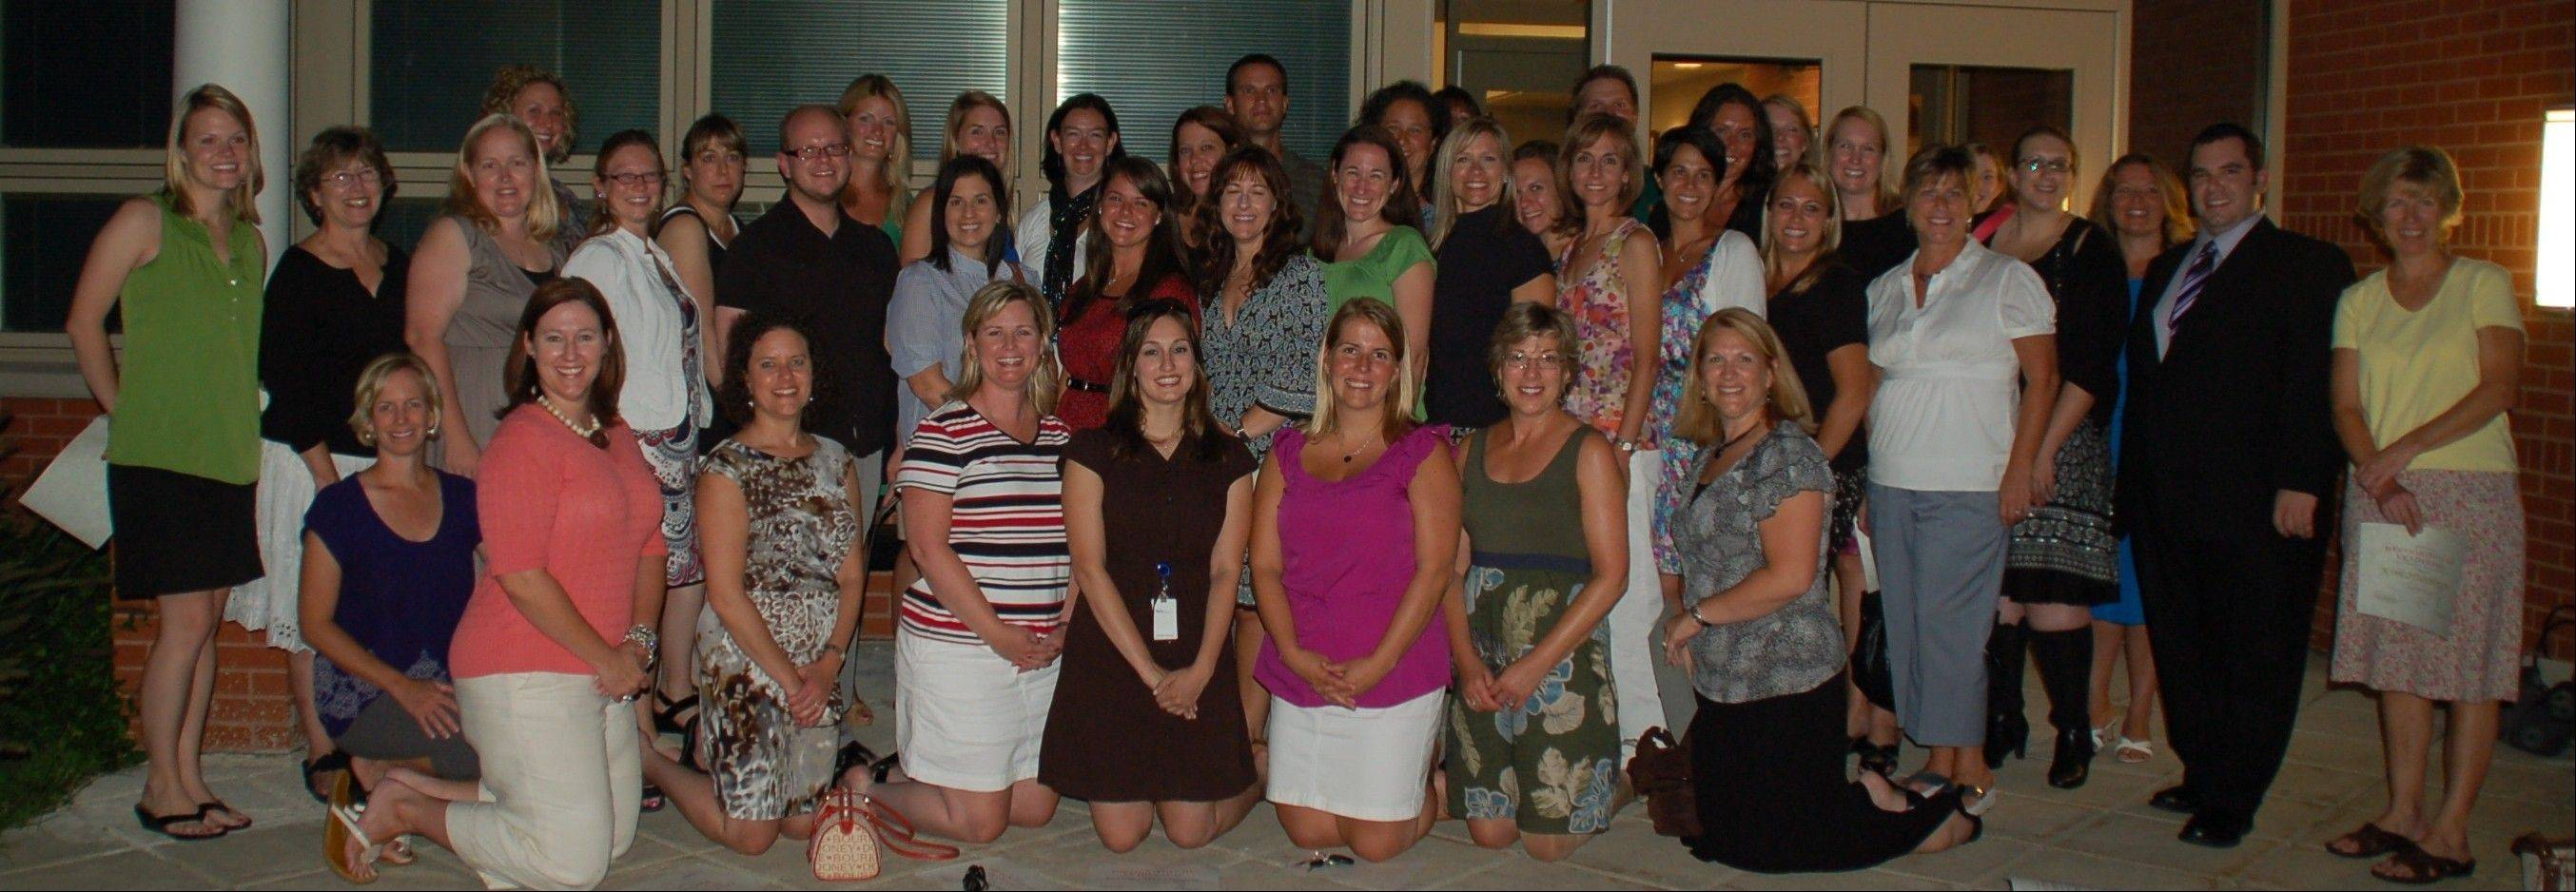 Several Libertyville Elementary District 70 teachers were honored for their leadership skills recently at a school board meeting. Described as �teachers of teachers,� they were recognized for helping their colleagues and serving on the Strategic Plan committee.